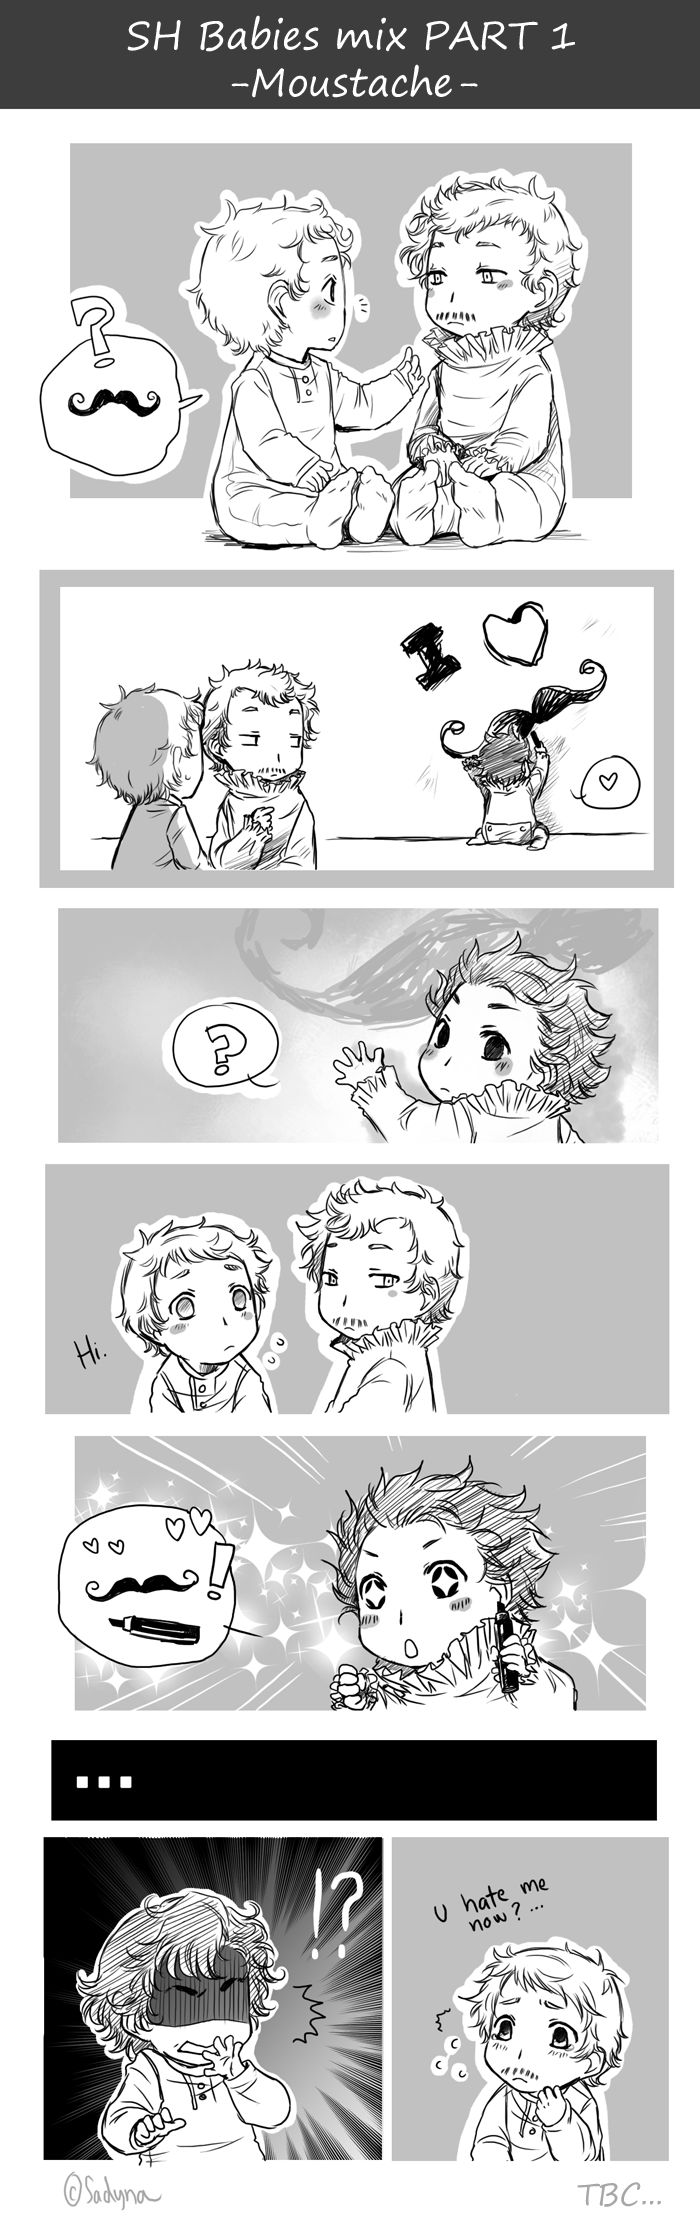 "Sherlock babies comic Part 1 ""Moustache"" // I don't really know what's going on here but they're too adorable to not warrant a repin :3"